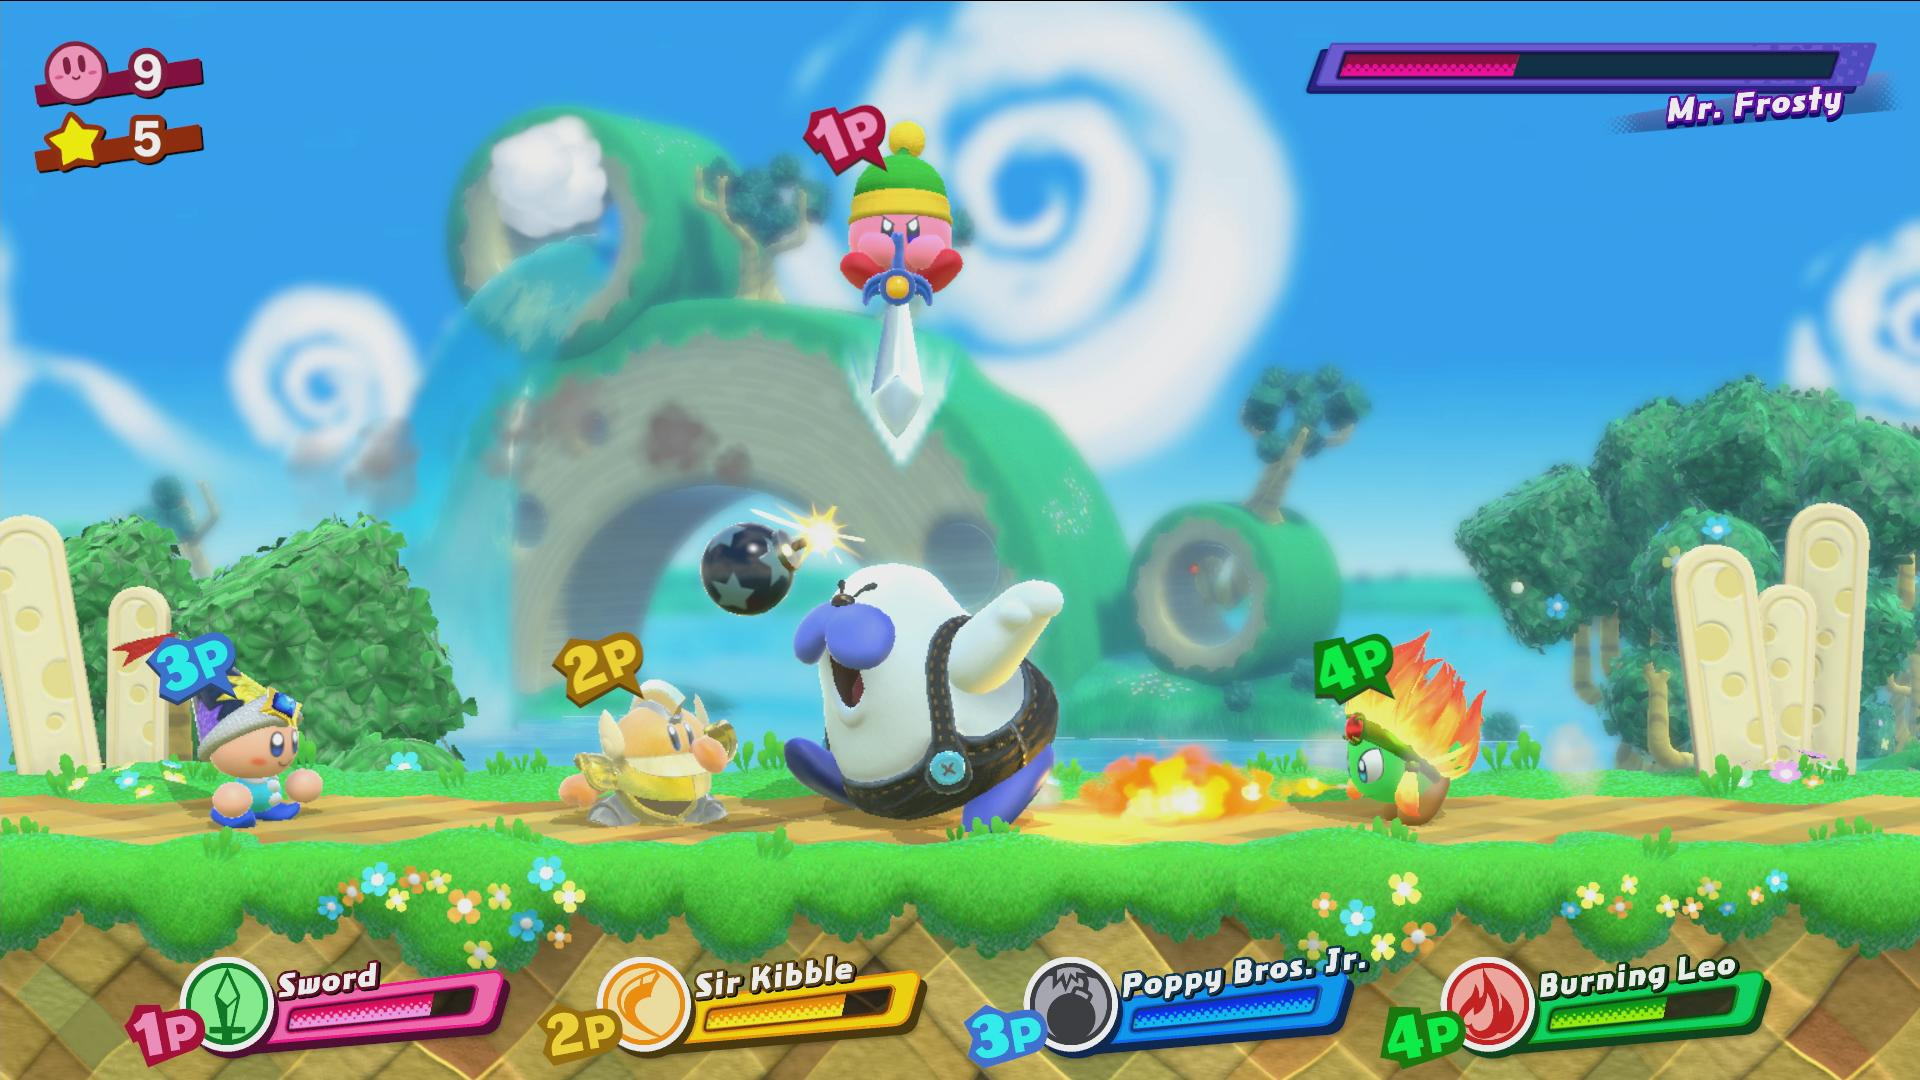 Kirby Will Go Back To Basics For Nintendo Switch VG247